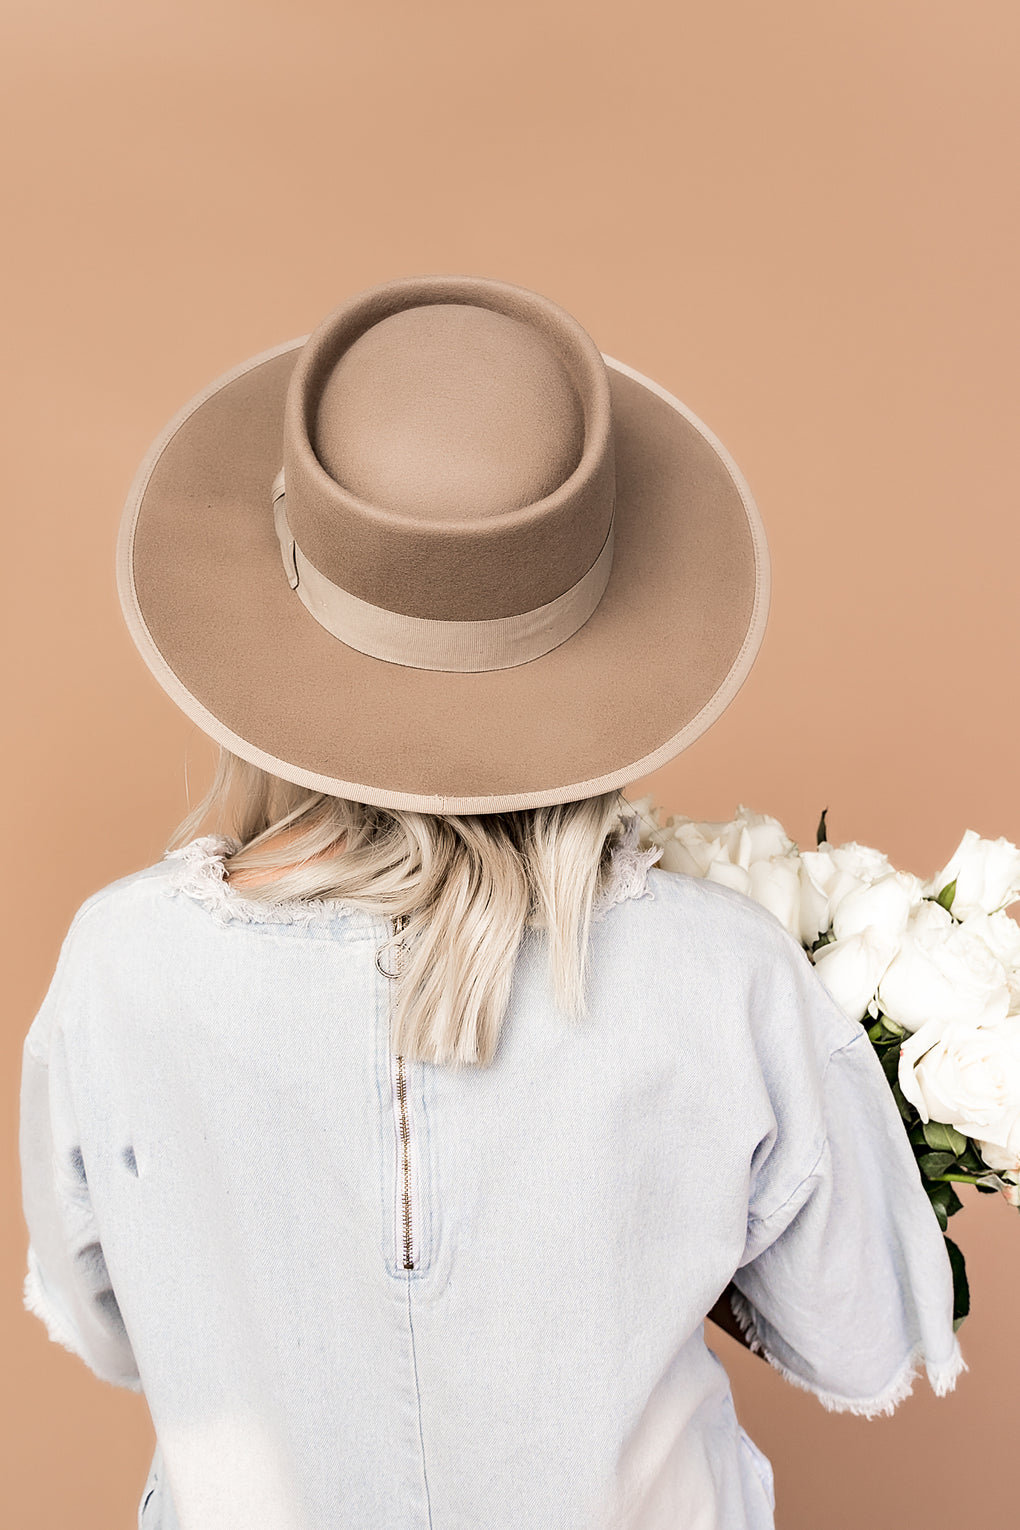 Lola Stiff Brim Hat in Beige *RESTOCKED*